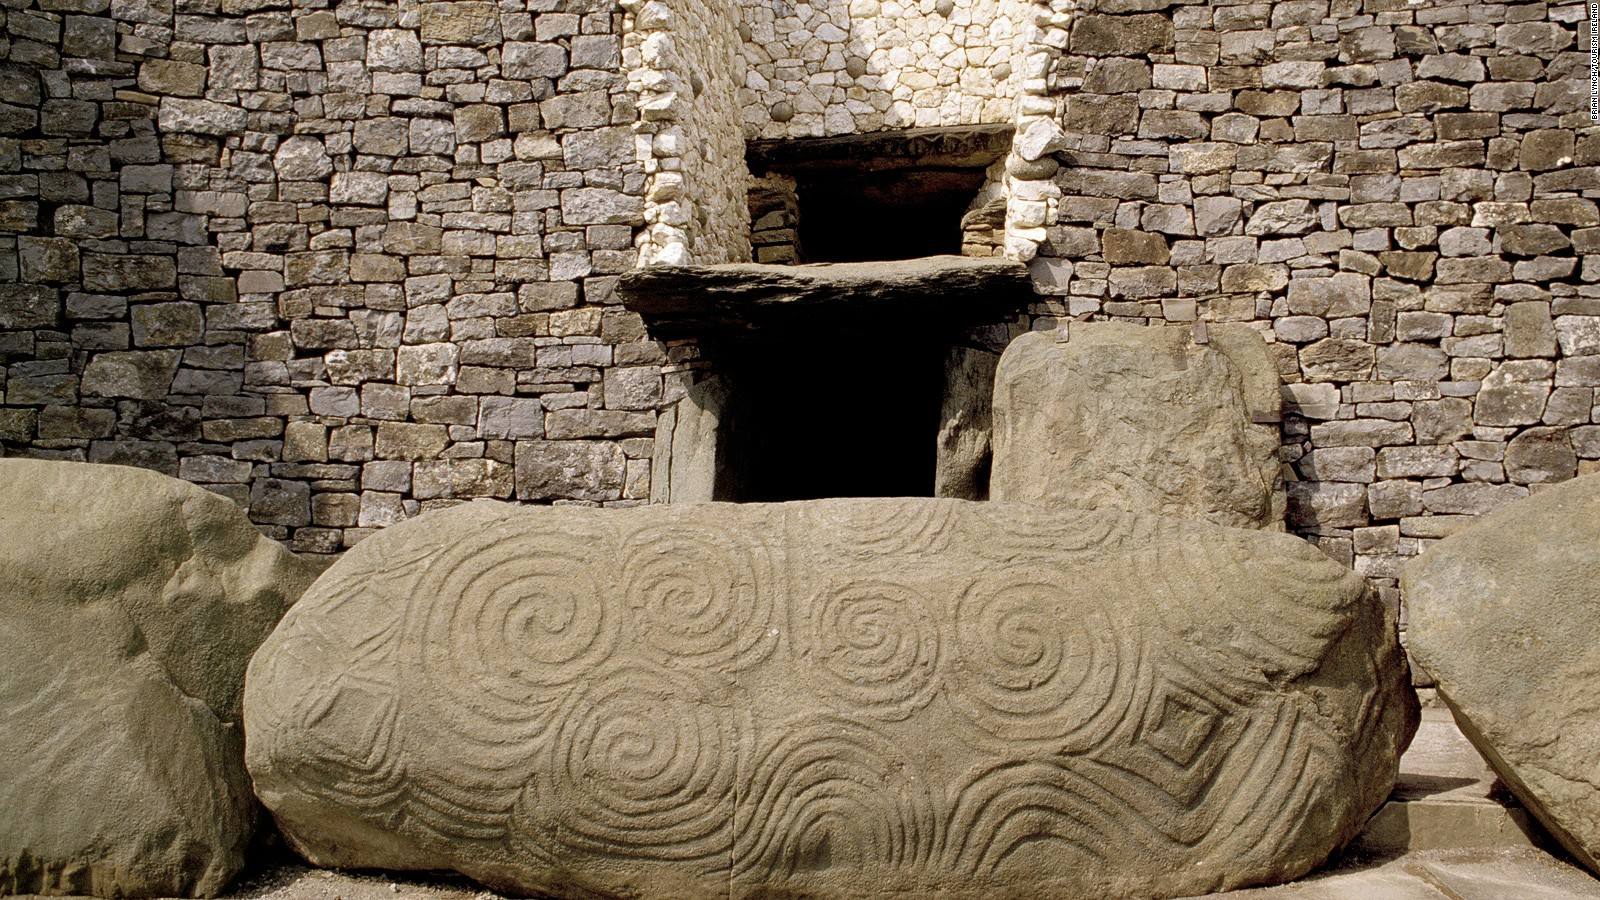 https://i1.wp.com/cdn.cnn.com/cnnnext/dam/assets/170705180808-newgrange-entrance-full-169.jpg